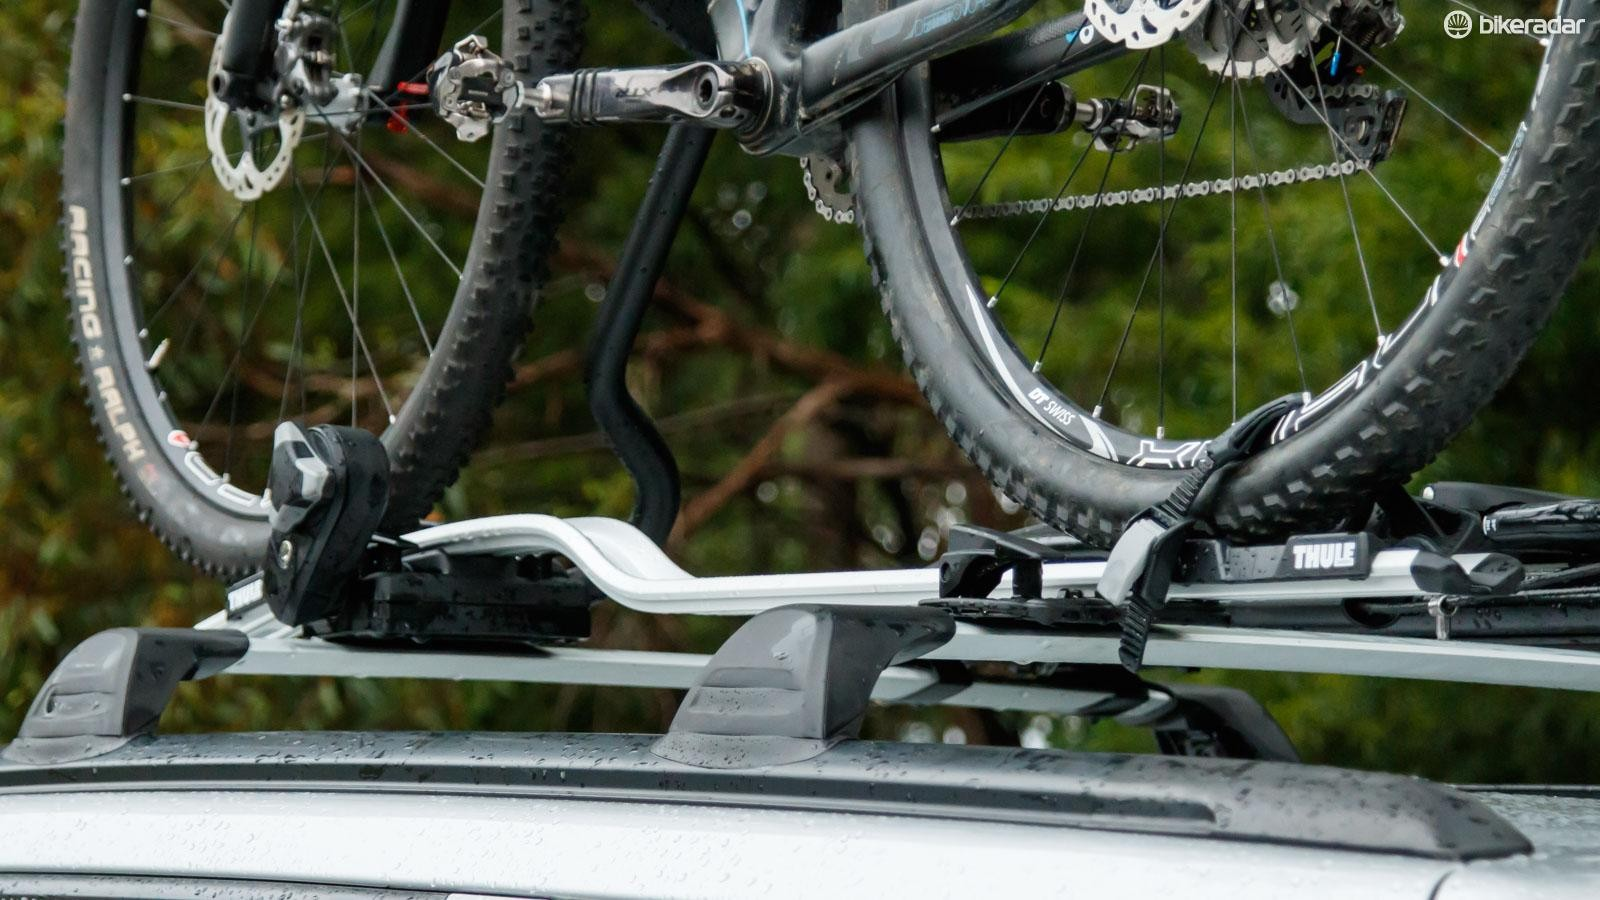 New for 2016, the Thule ProRide 598 is ready to become the next benchmark in upright roof racks